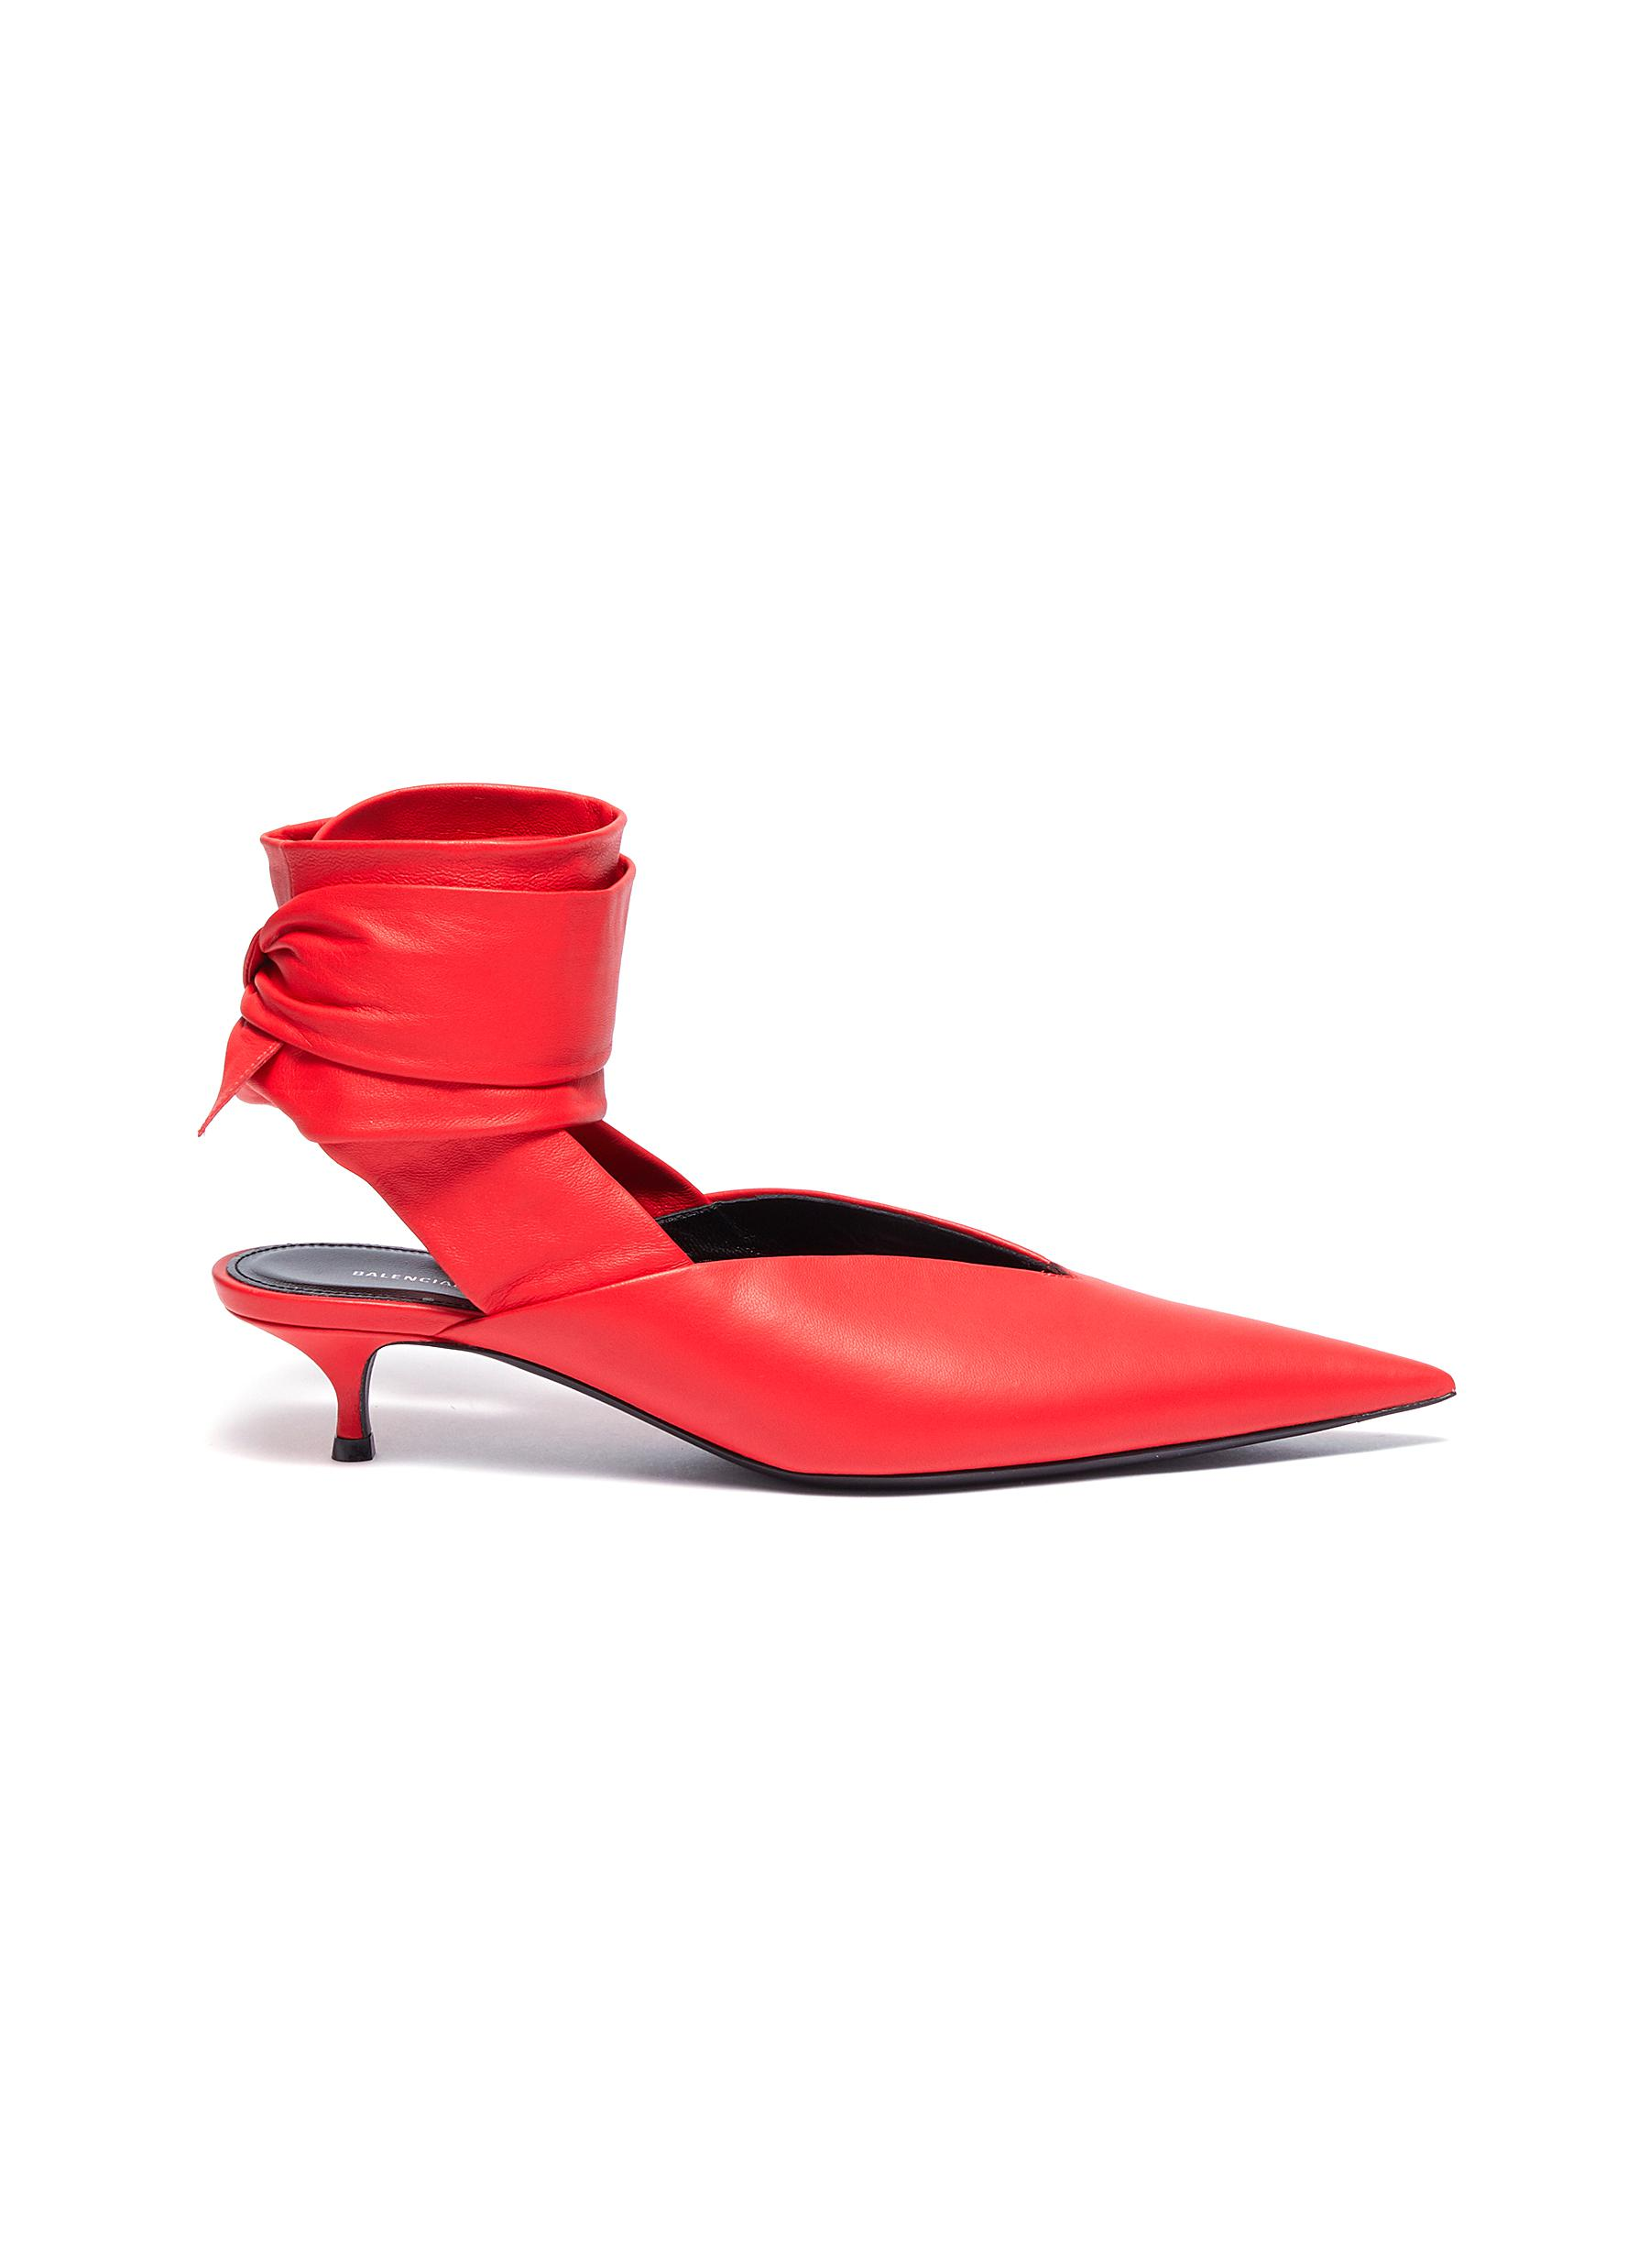 Dance Knife wraparound ankle tie leather mules by Balenciaga